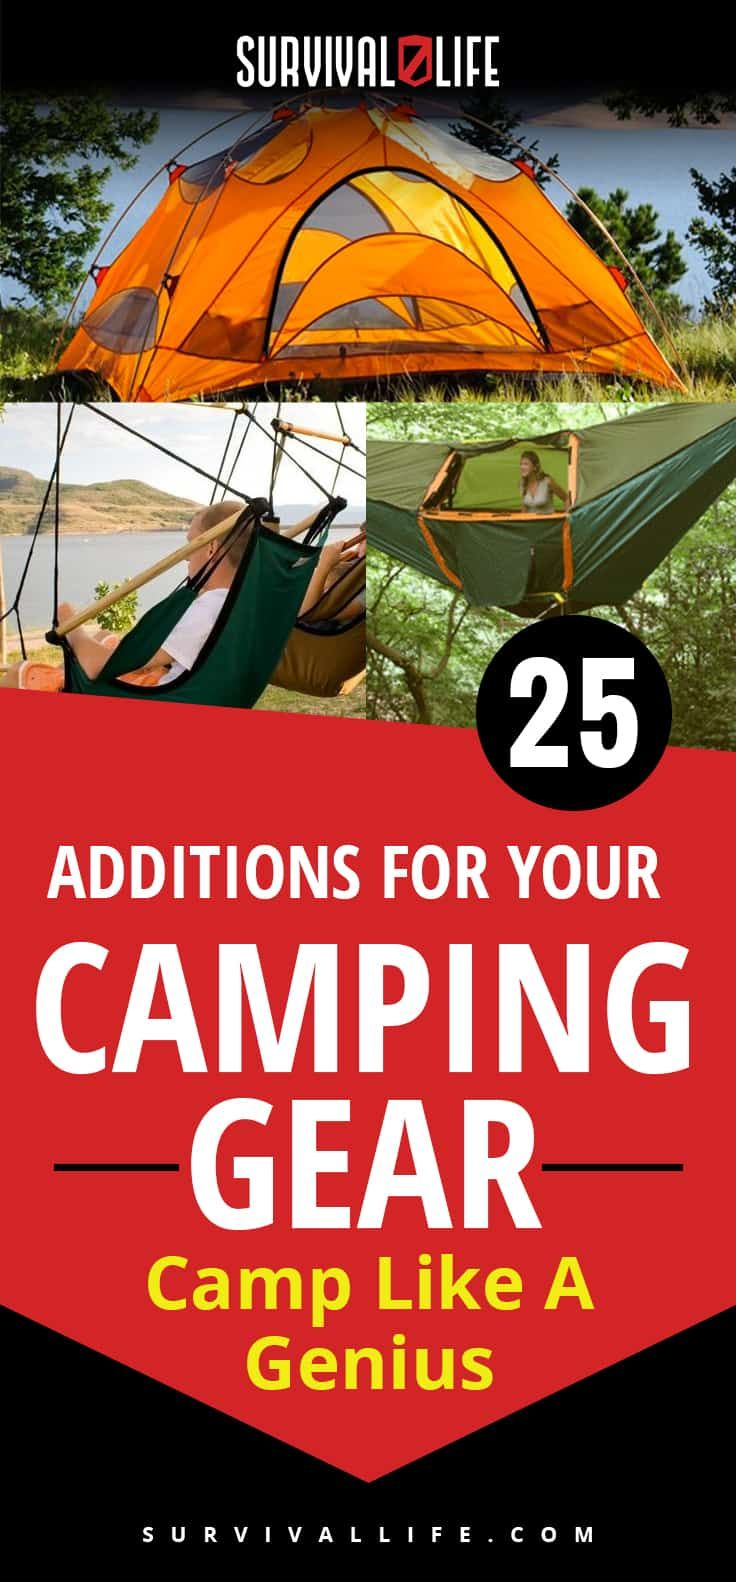 Photo of Camping Gears | Camp Like A Genius With These 25 Additions